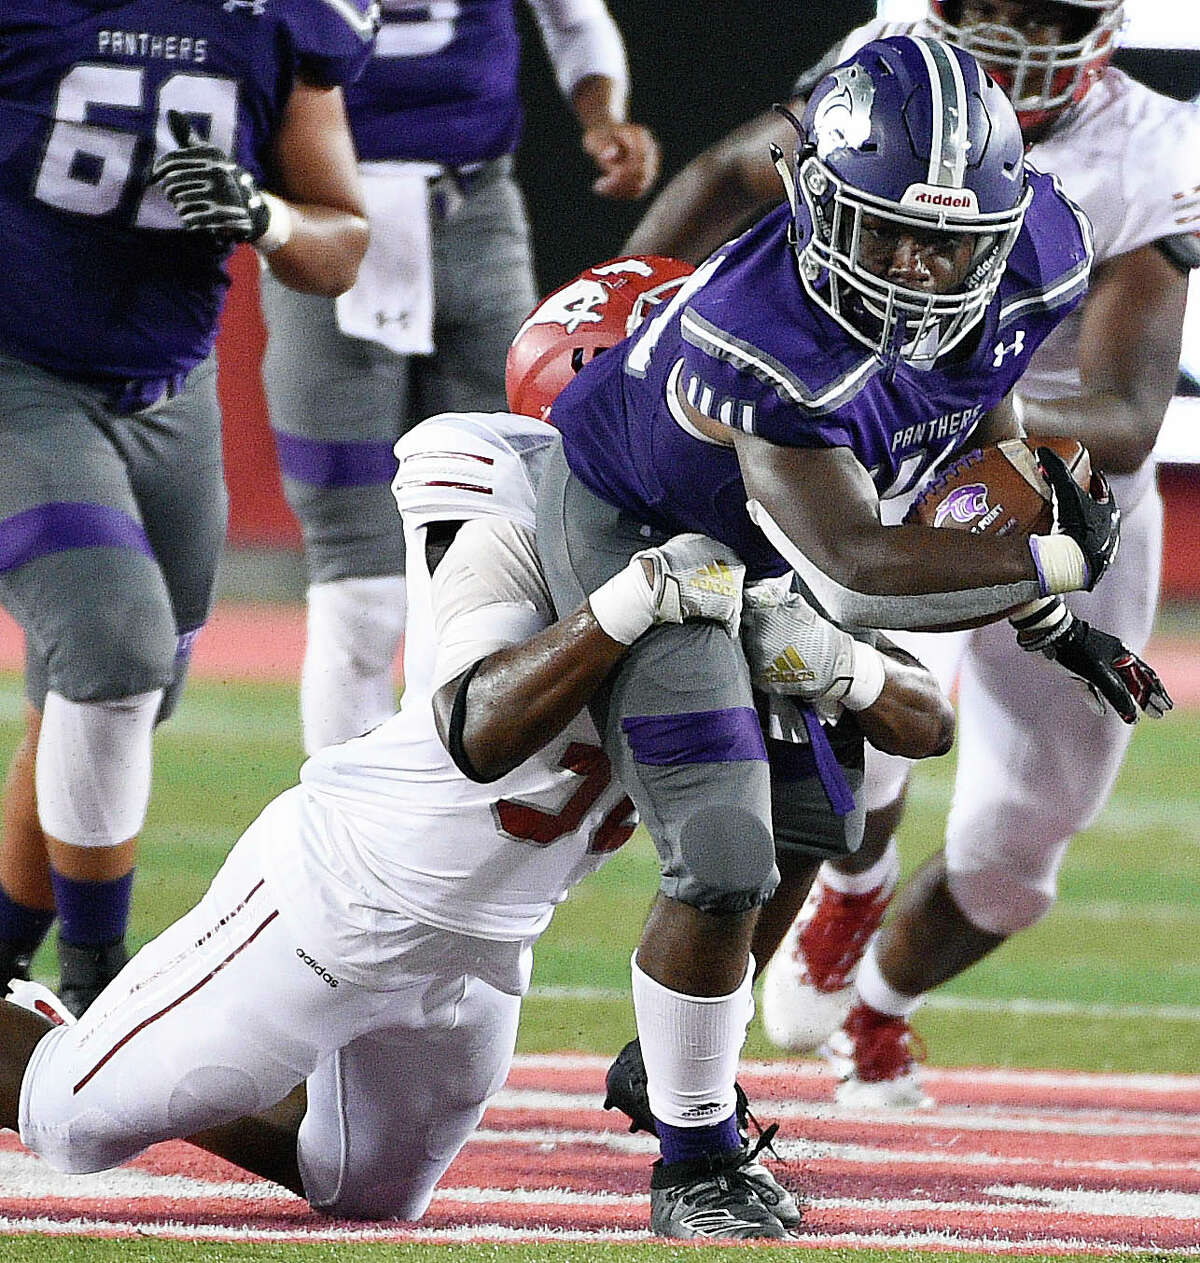 Ridge Point running back Marcus Wright, right, is tackled by North Shore linebacker Jermaine Caldwell during the second half of a high school football game, Thursday, Sept. 5, 2019, at TDECU Stadium at the University of Houston.